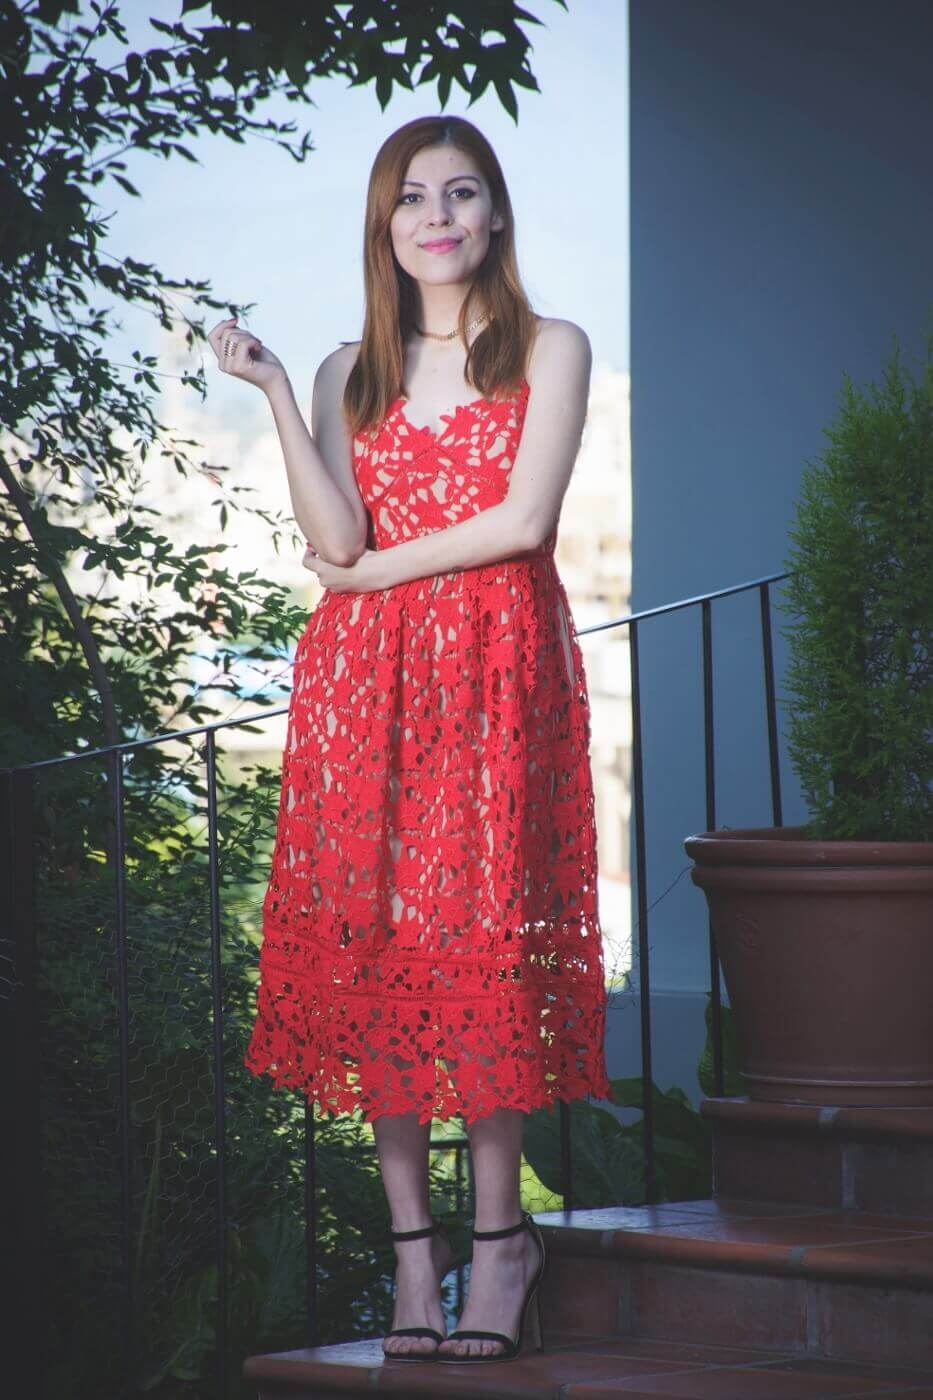 zaful red lace crochet midi lenght dress valentines day outfit ideas summer 2017 trends deborah ferrero style by deb08